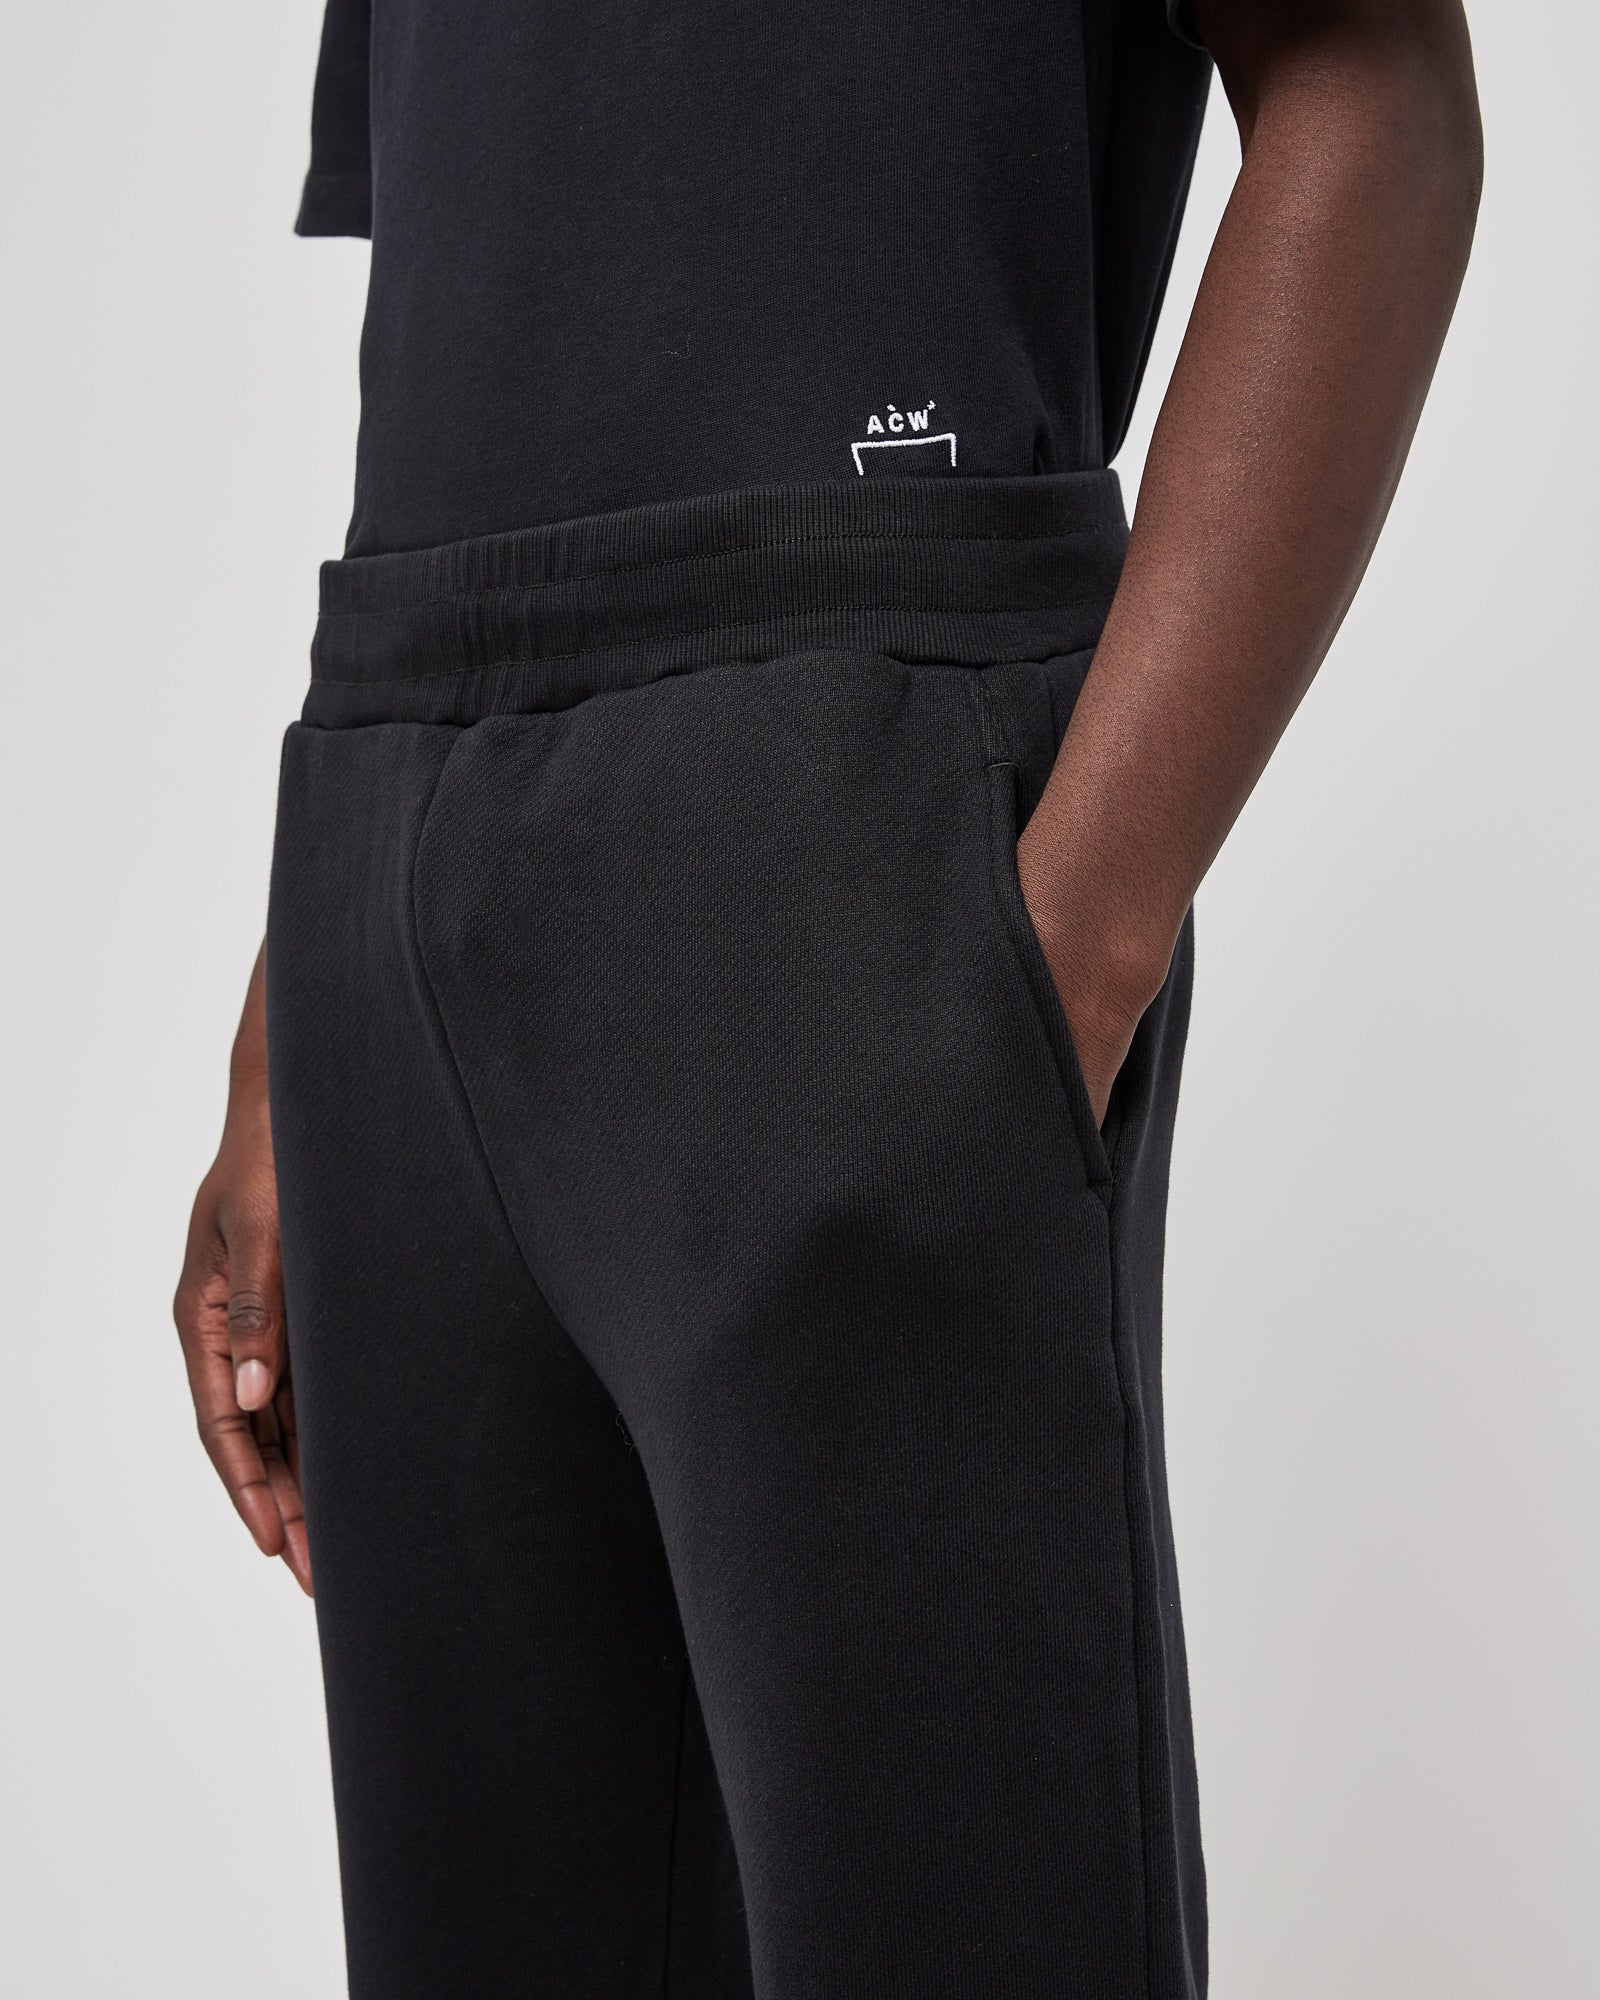 Slim Fit Bracket Pants in Black